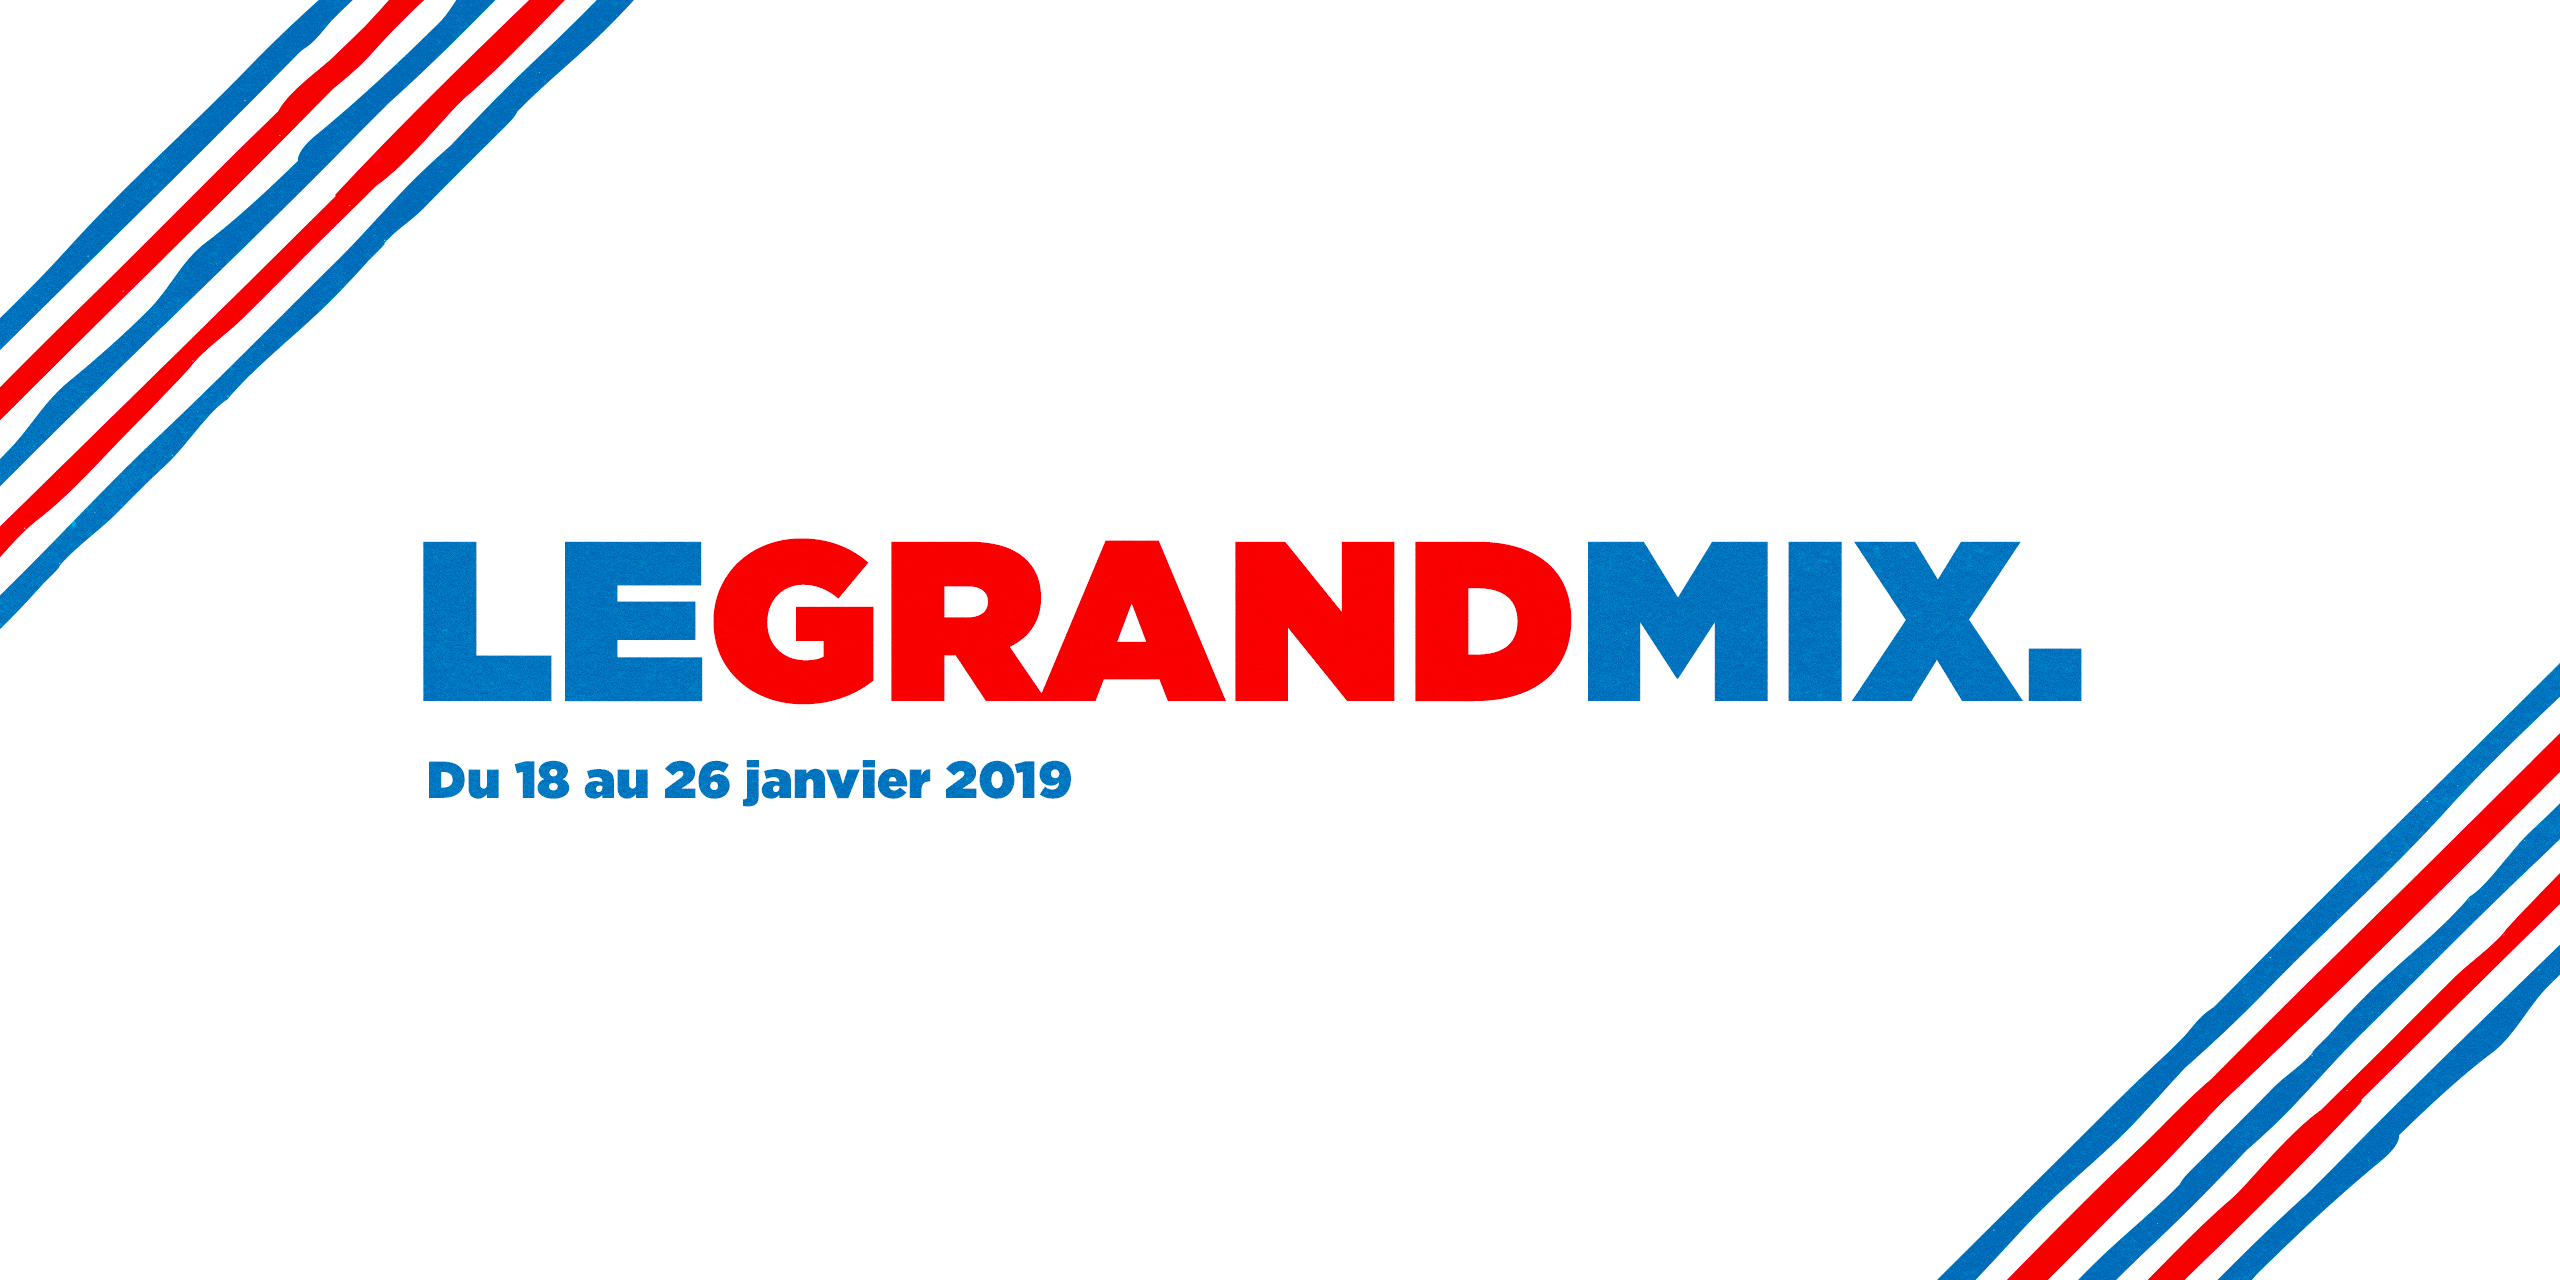 Paris Cocktail Week 2019 Grand Mix